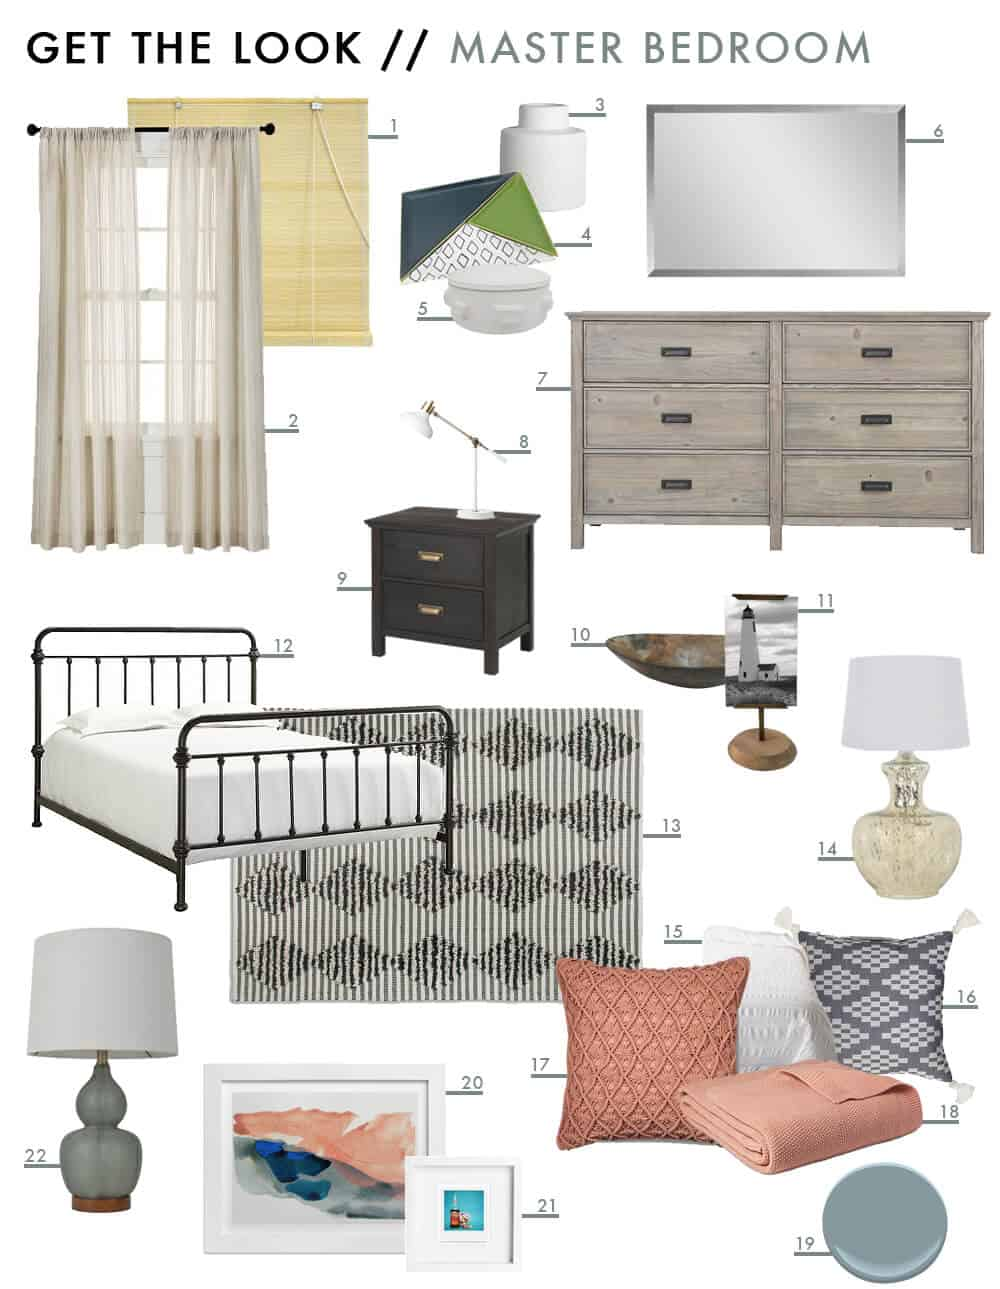 Sylvia's Makeover Master Bedroom Get The Look